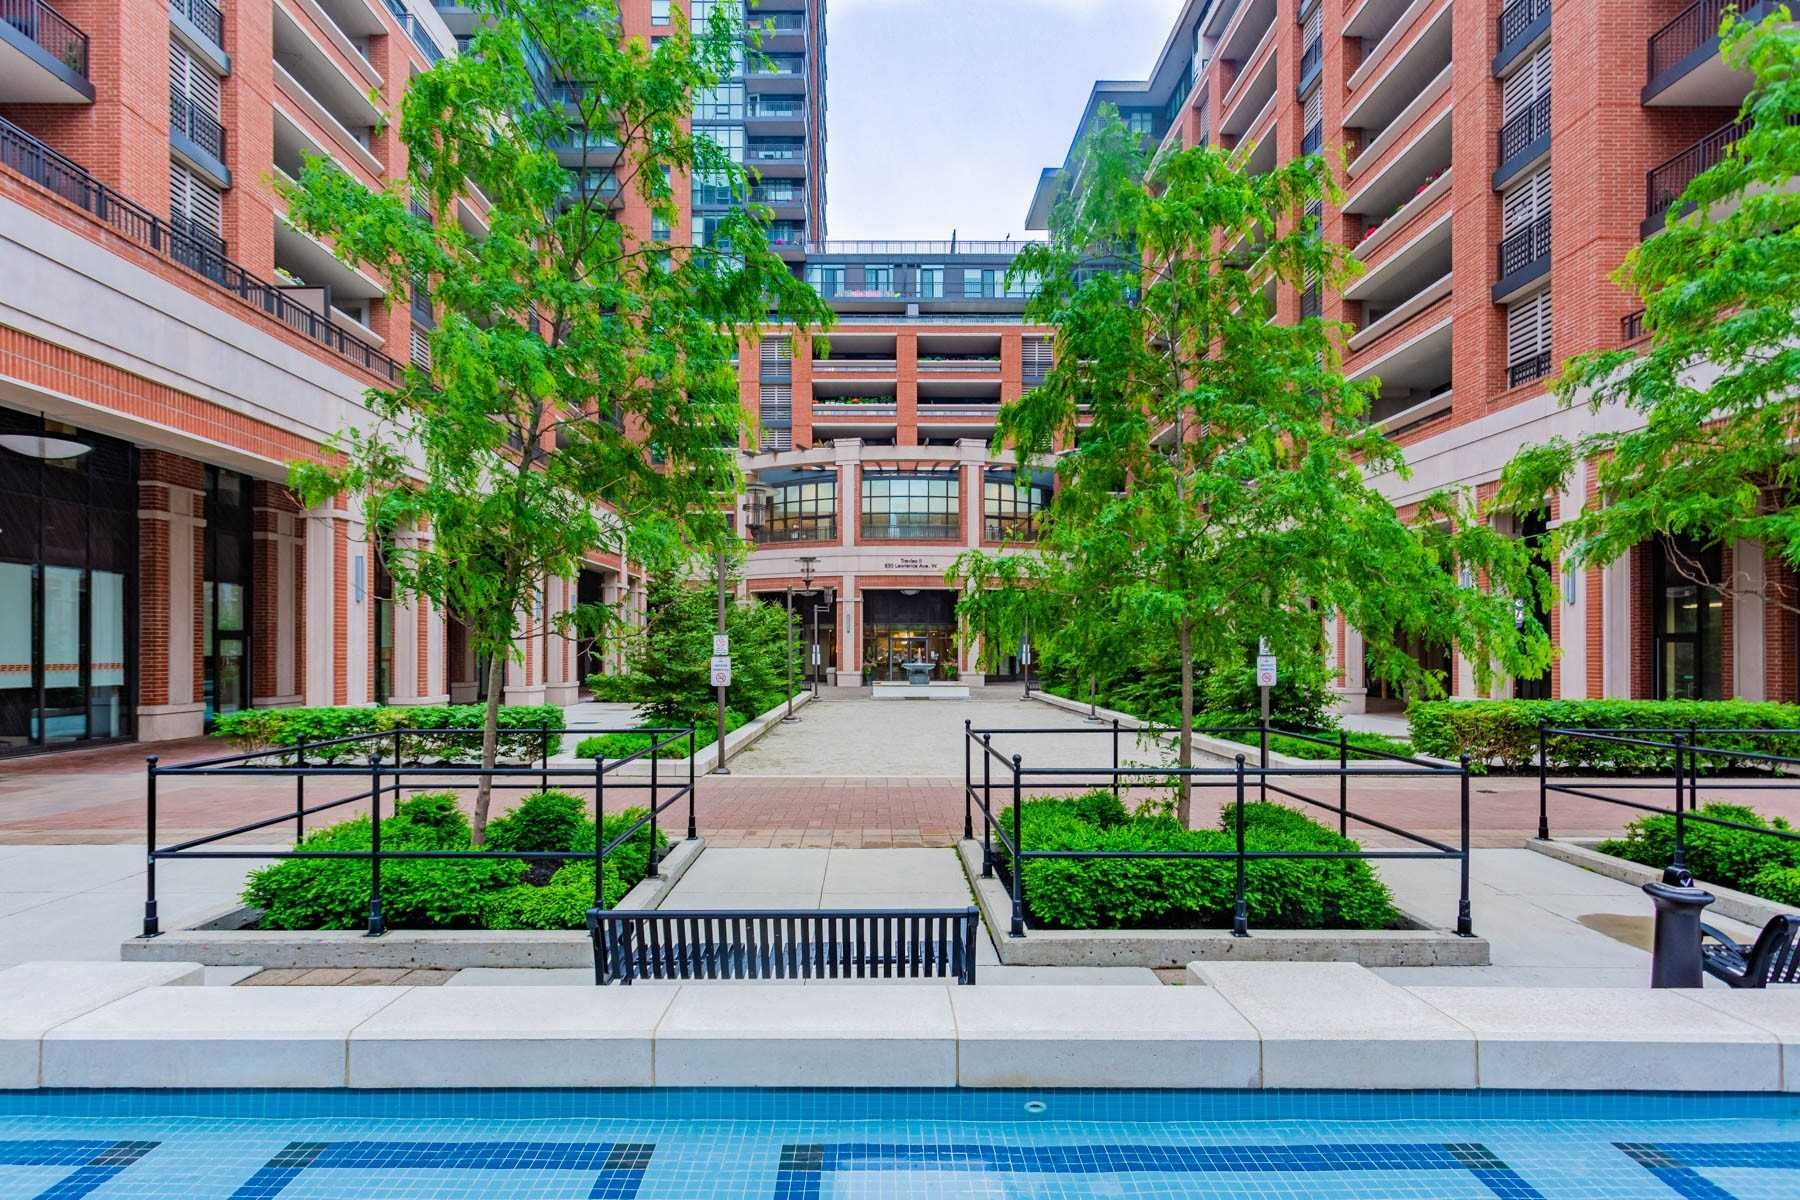 830 Lawrence Ave W, unit 339 for sale in Toronto - image #1